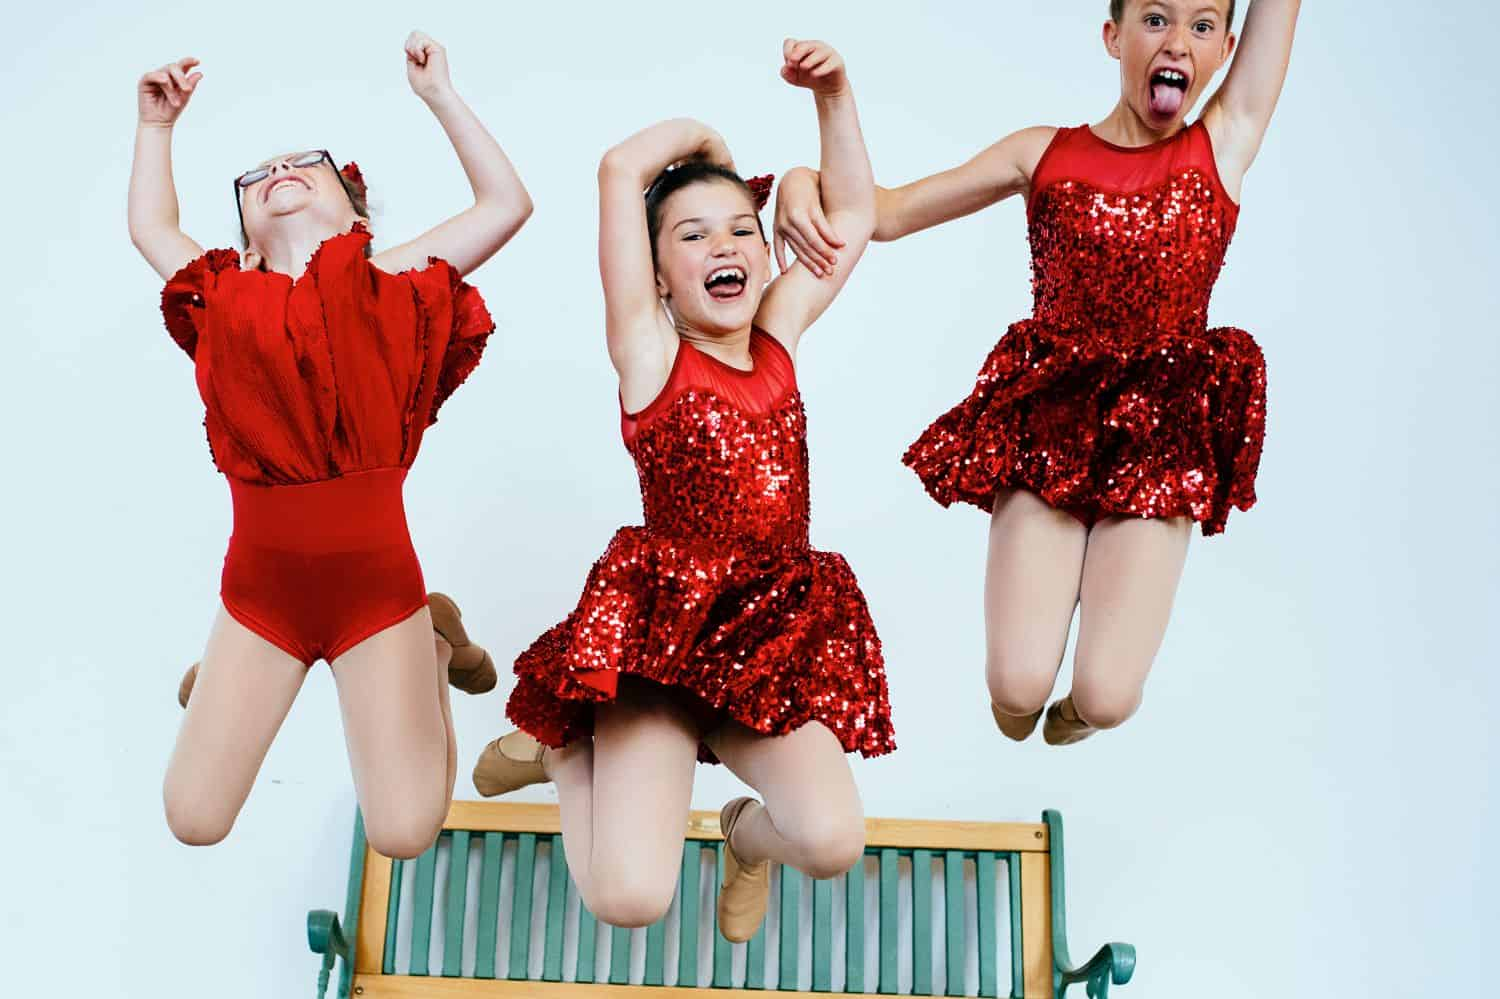 Three little girls in red satin dresses leap into the air with their arms raised toward the sky. By Kate T. Parker for Strong is the New Pretty